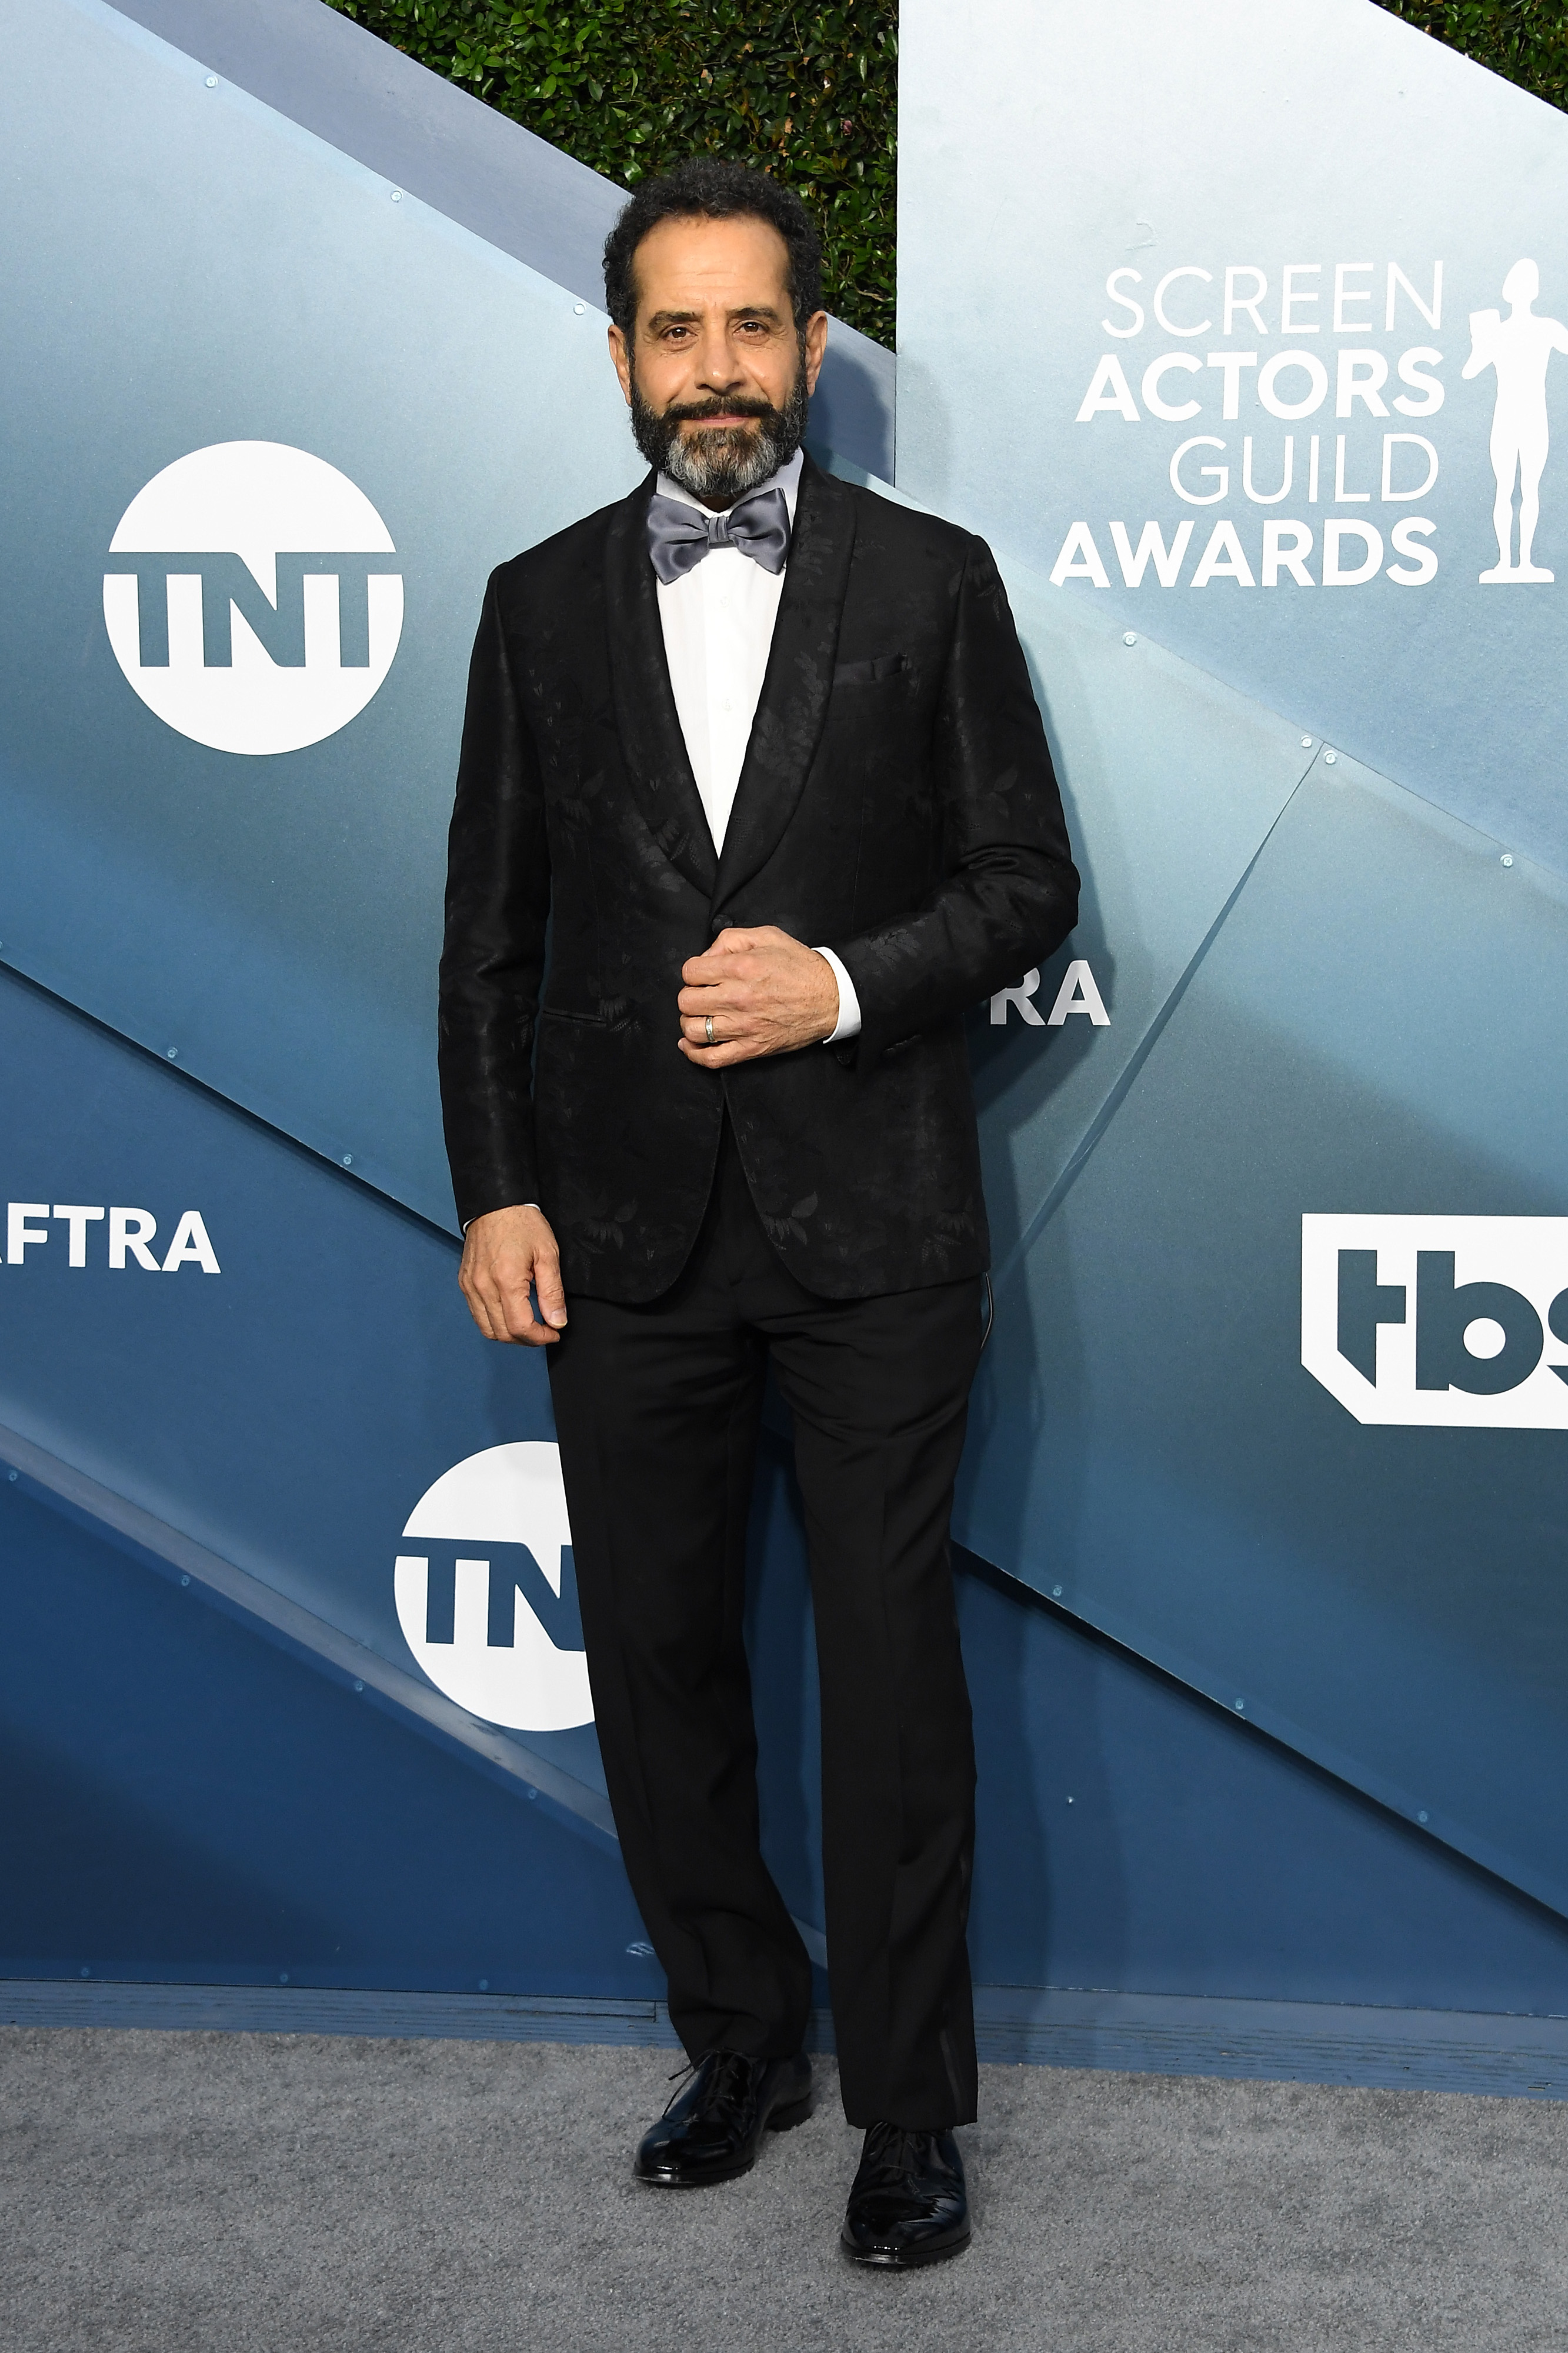 LOS ANGELES, CALIFORNIA - JANUARY 19: Tony Shalhoub attends the 26th Annual Screen ActorsGuild Awards at The Shrine Auditorium on January 19, 2020 in Los Angeles, California. (Photo by Steve Granitz/WireImage)